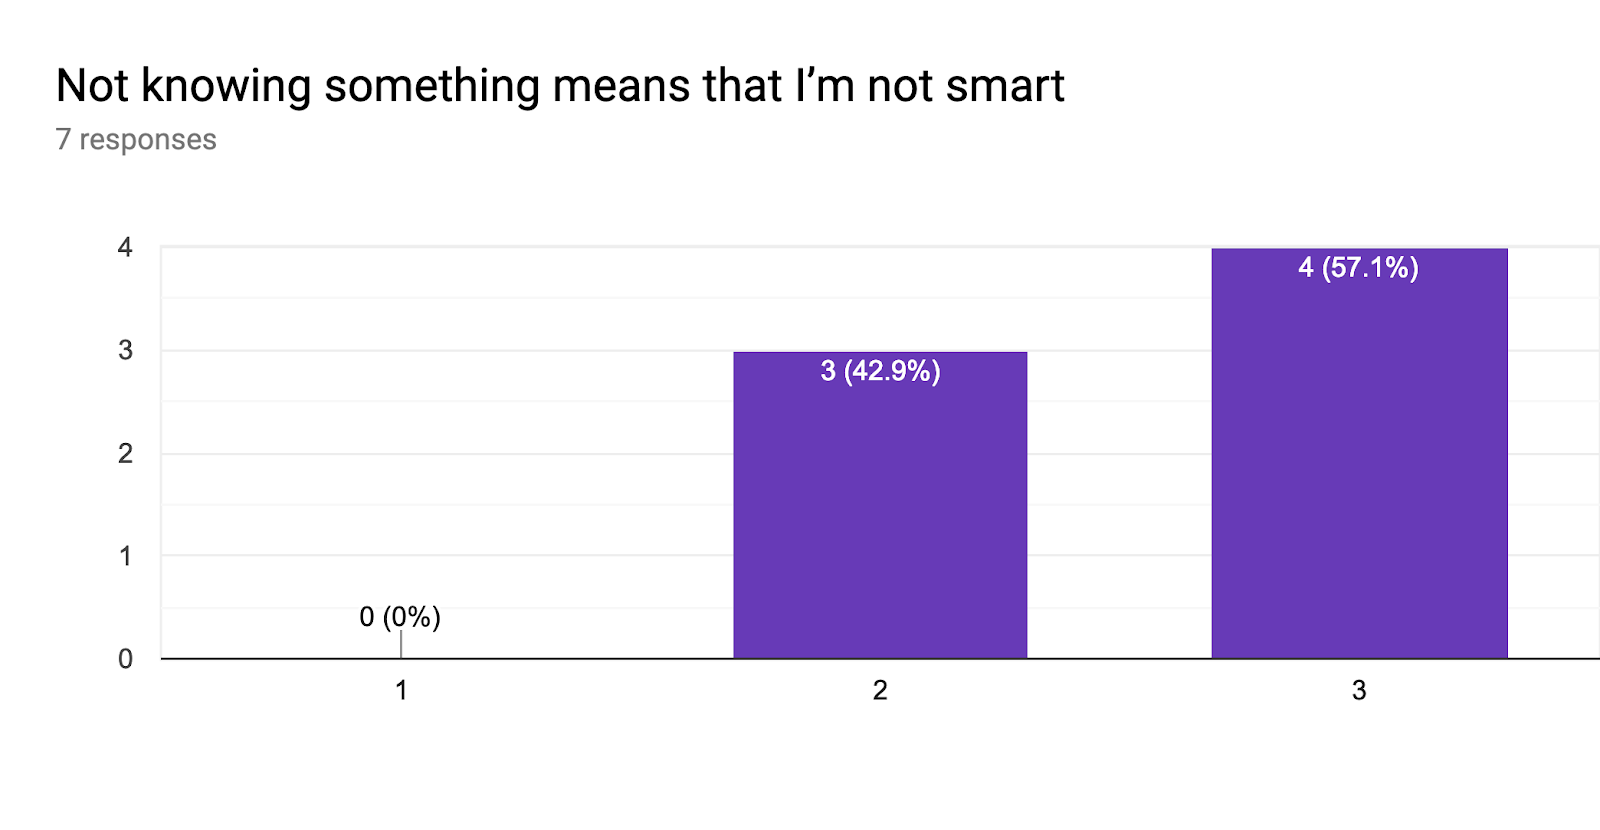 Forms response chart. Question title: Not knowing something means that I'm not smart. Number of responses: 7 responses.